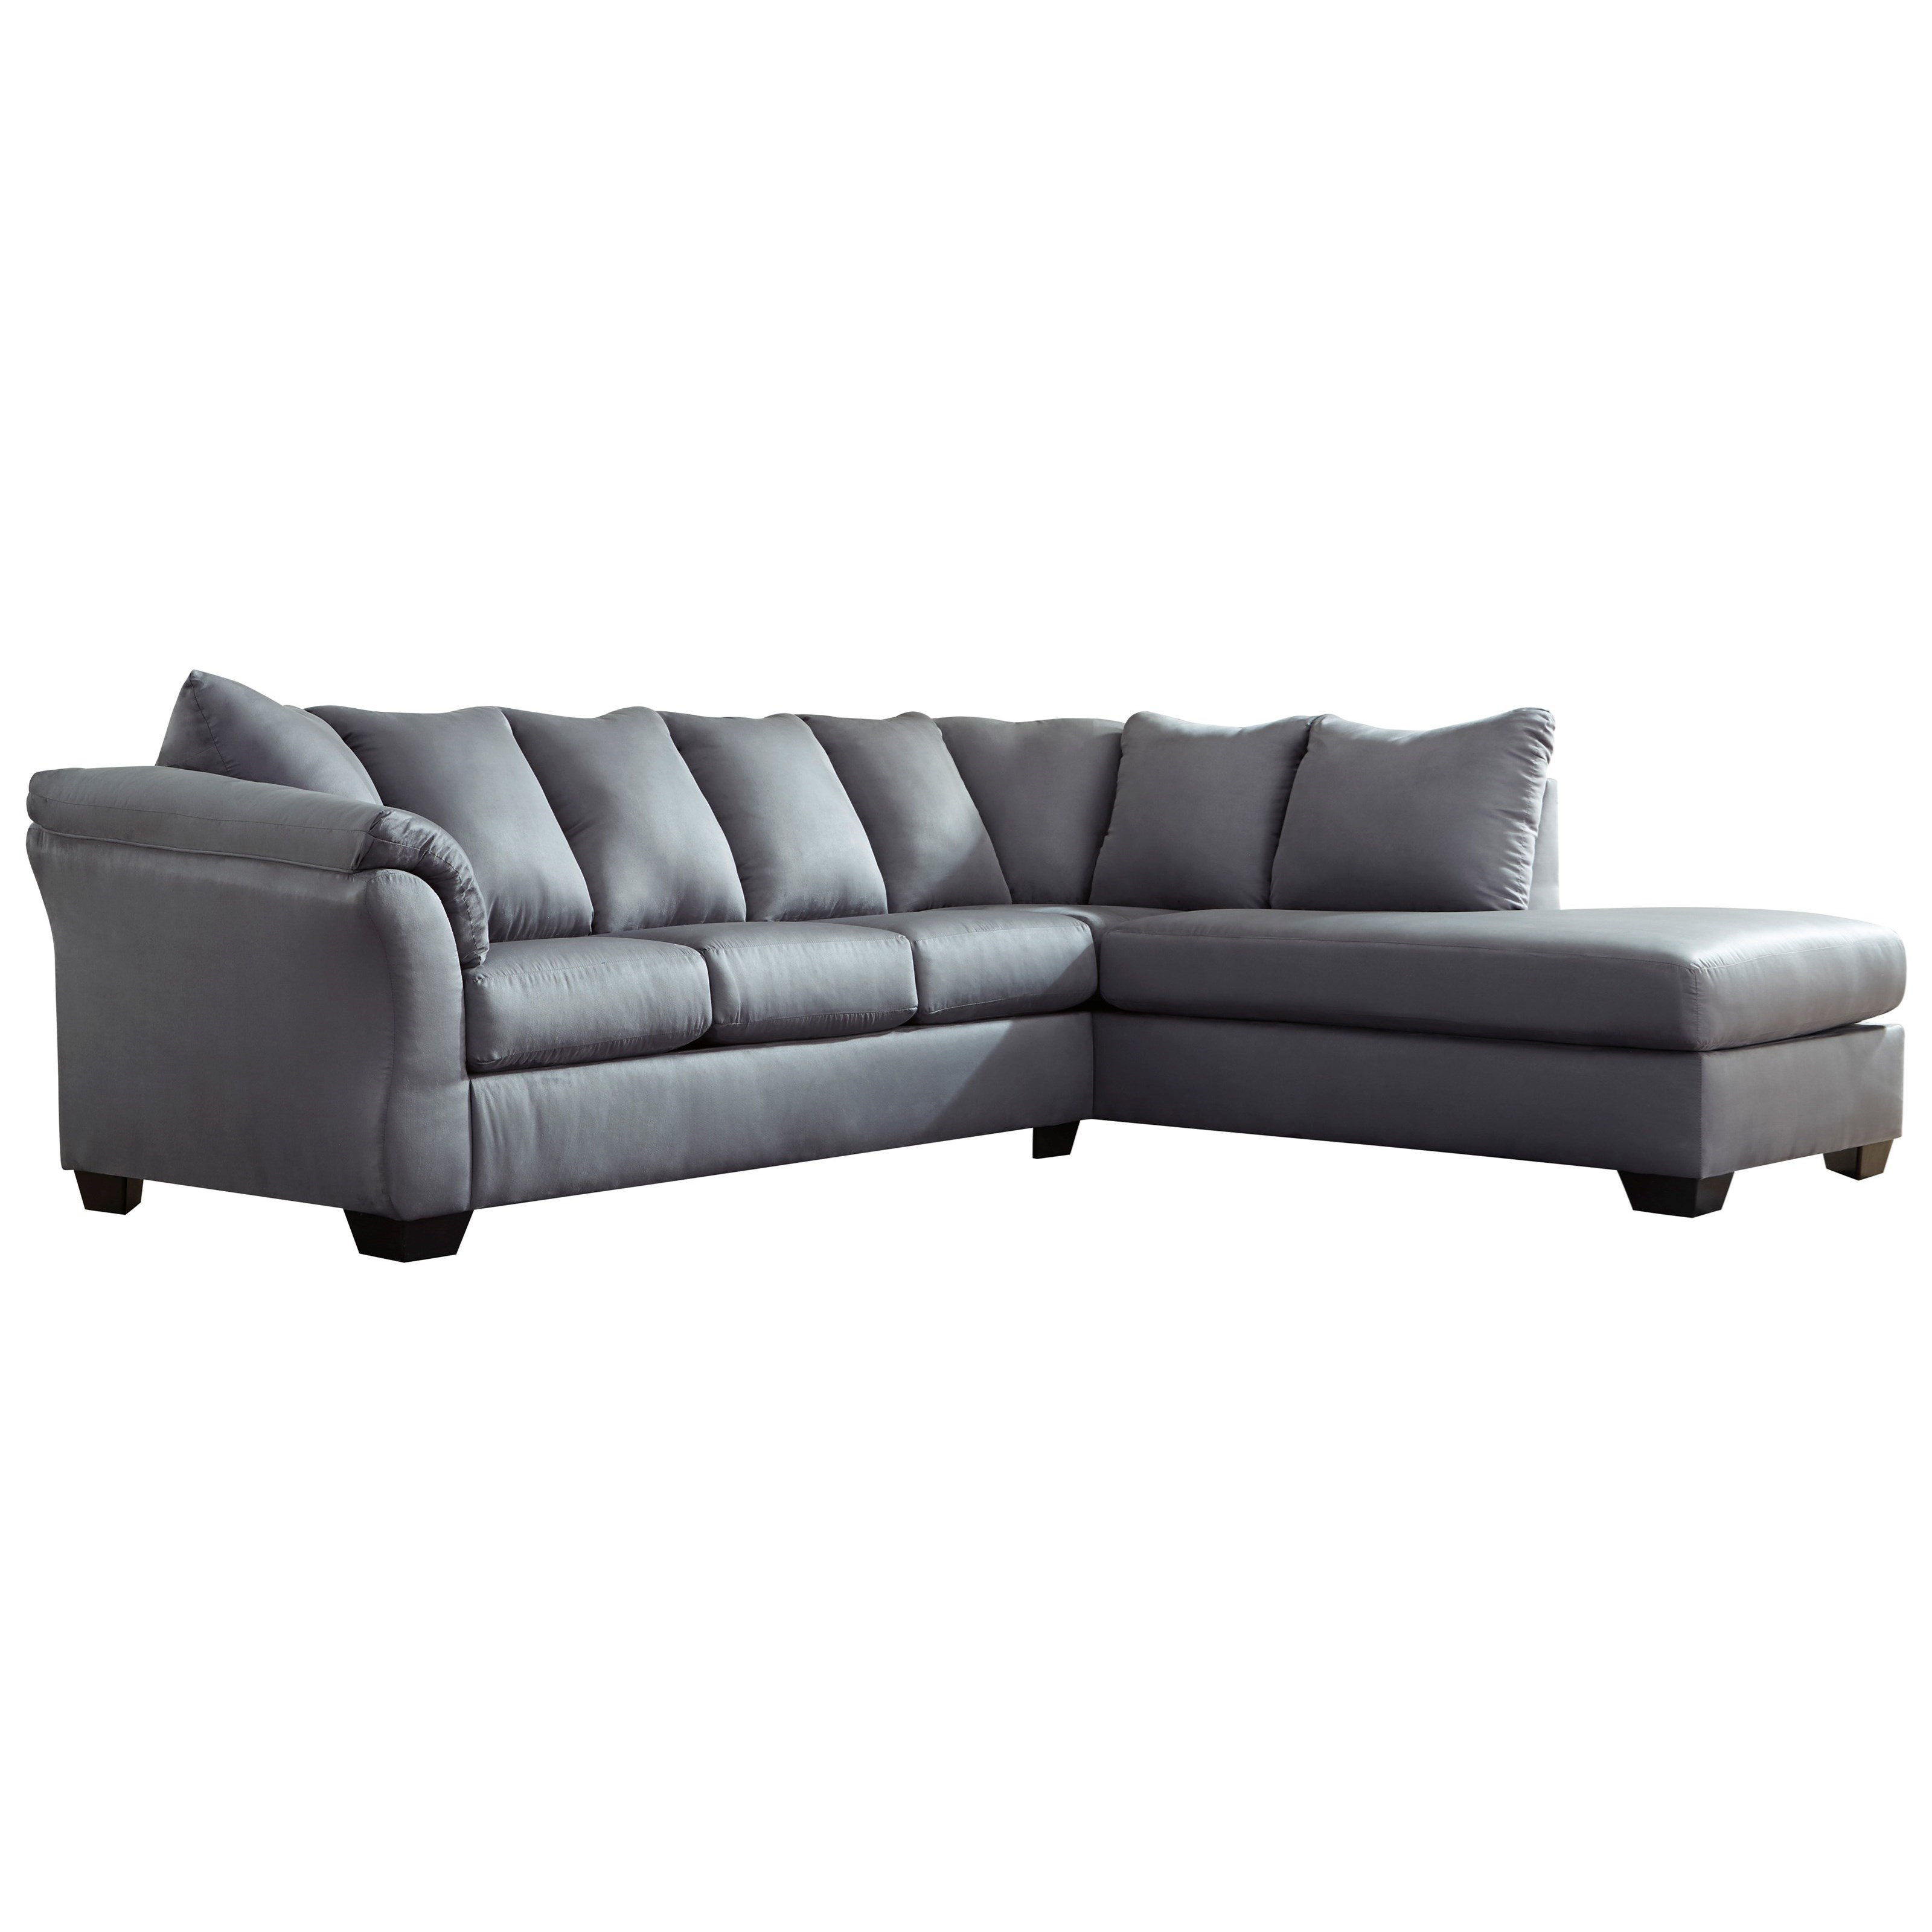 2-Piece Sectional Sofa